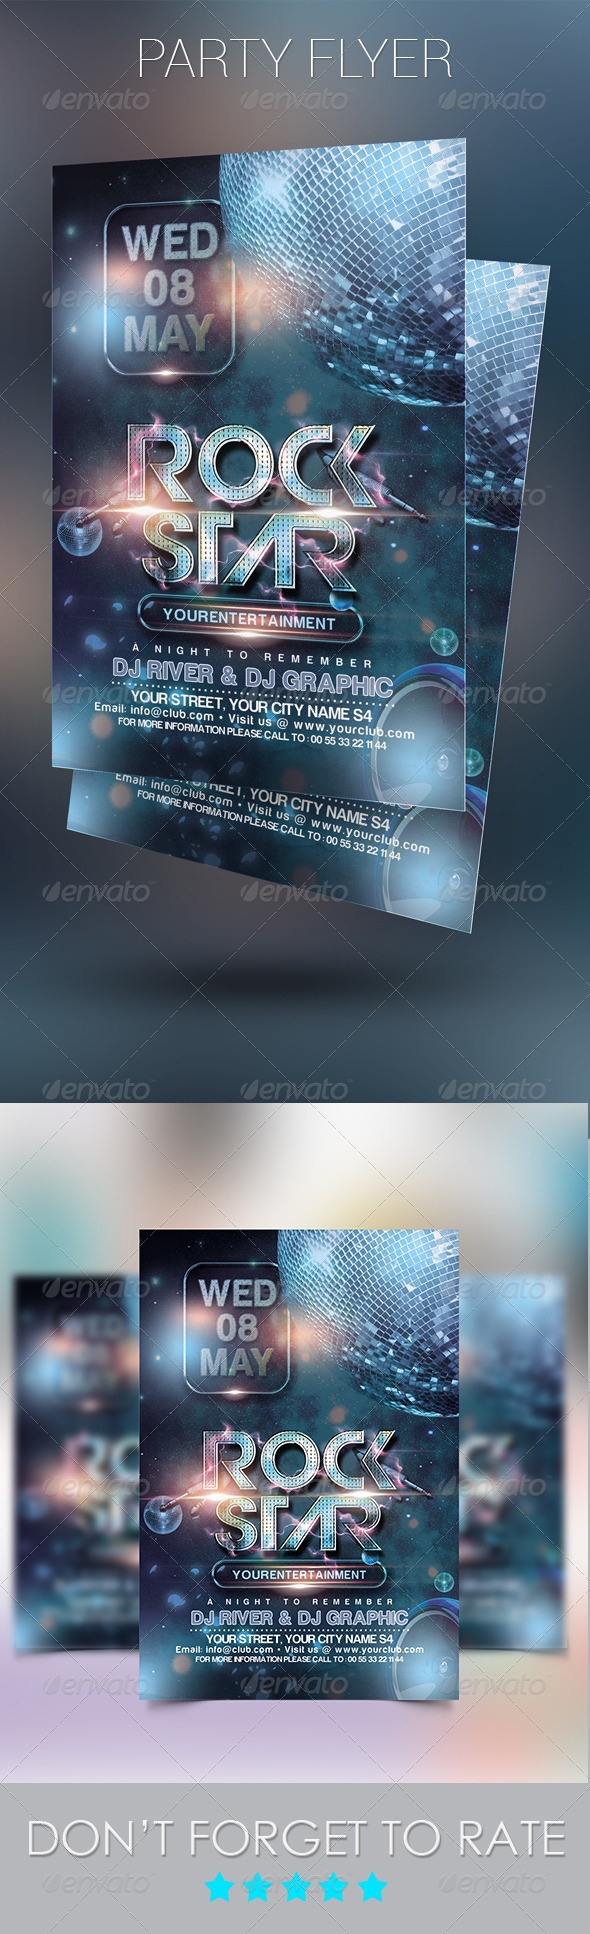 GraphicRiver Rock Star Party Flyer Template 7806561